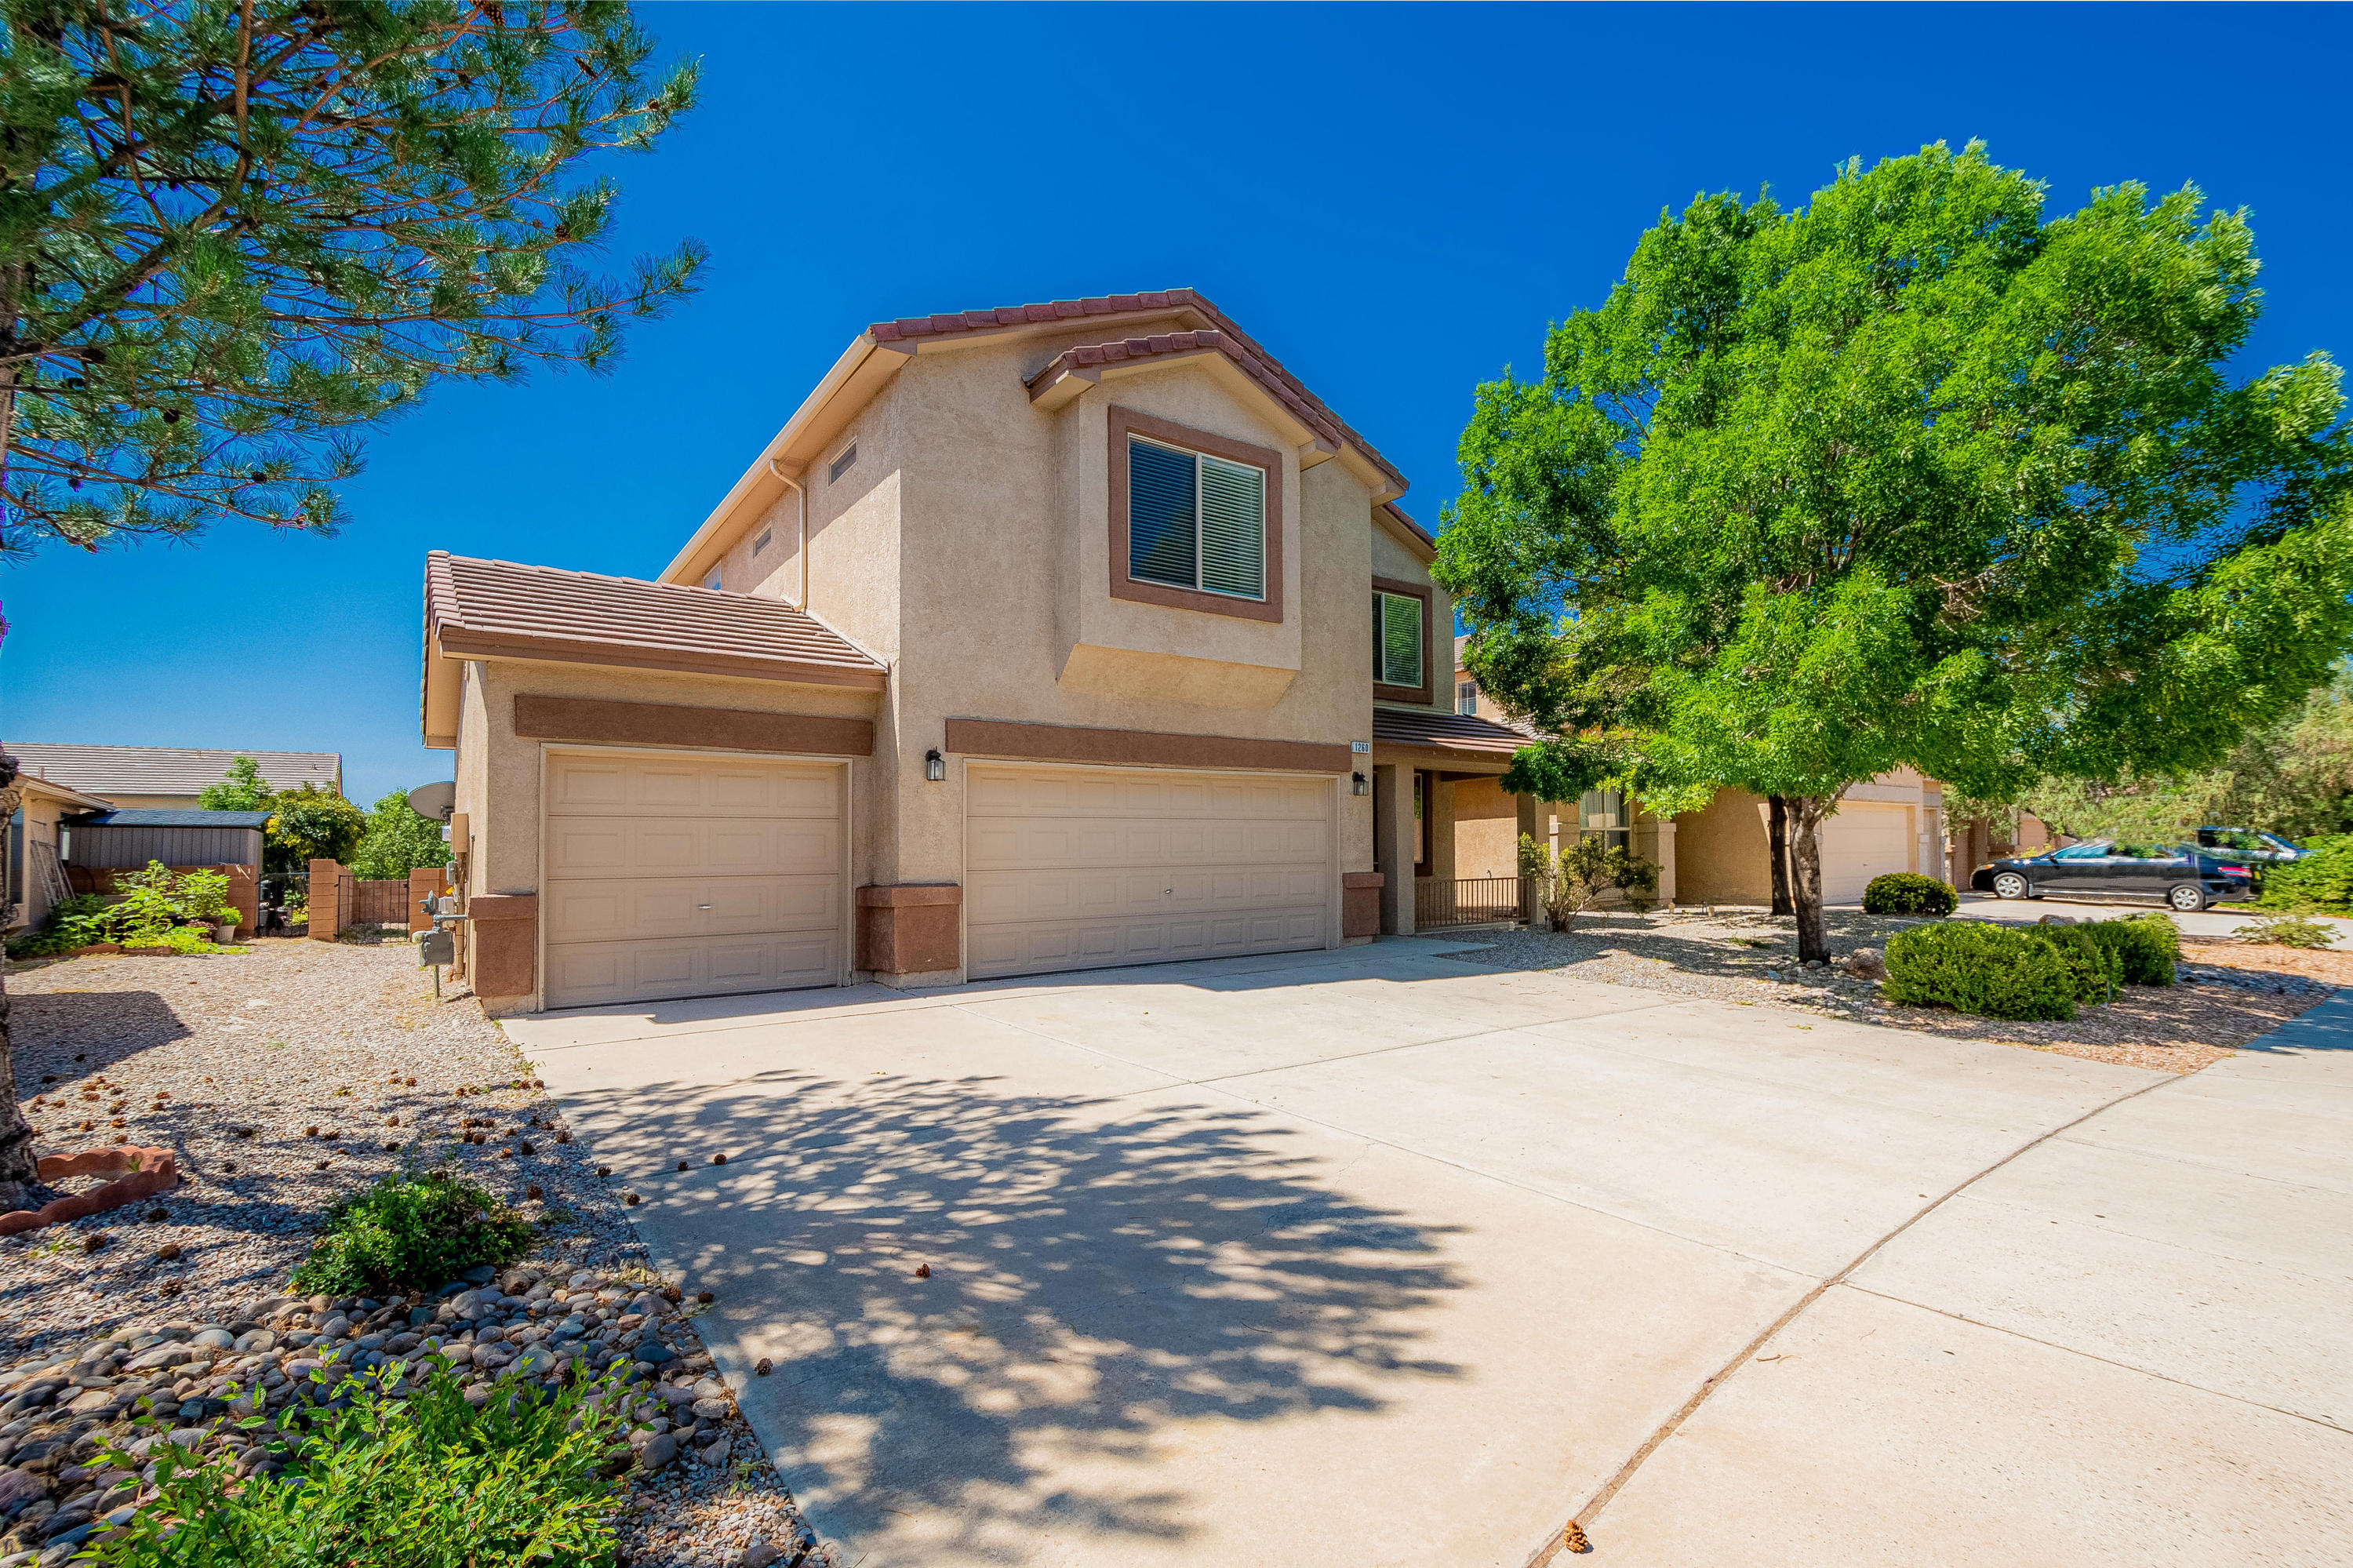 Four bedroom home in a beautiful Rio Rancho neighborhood. Surrounded by parks with a 3-car garage and multiple balconies. Wonderful investment property or family home. Comes with a Vivint Security System.